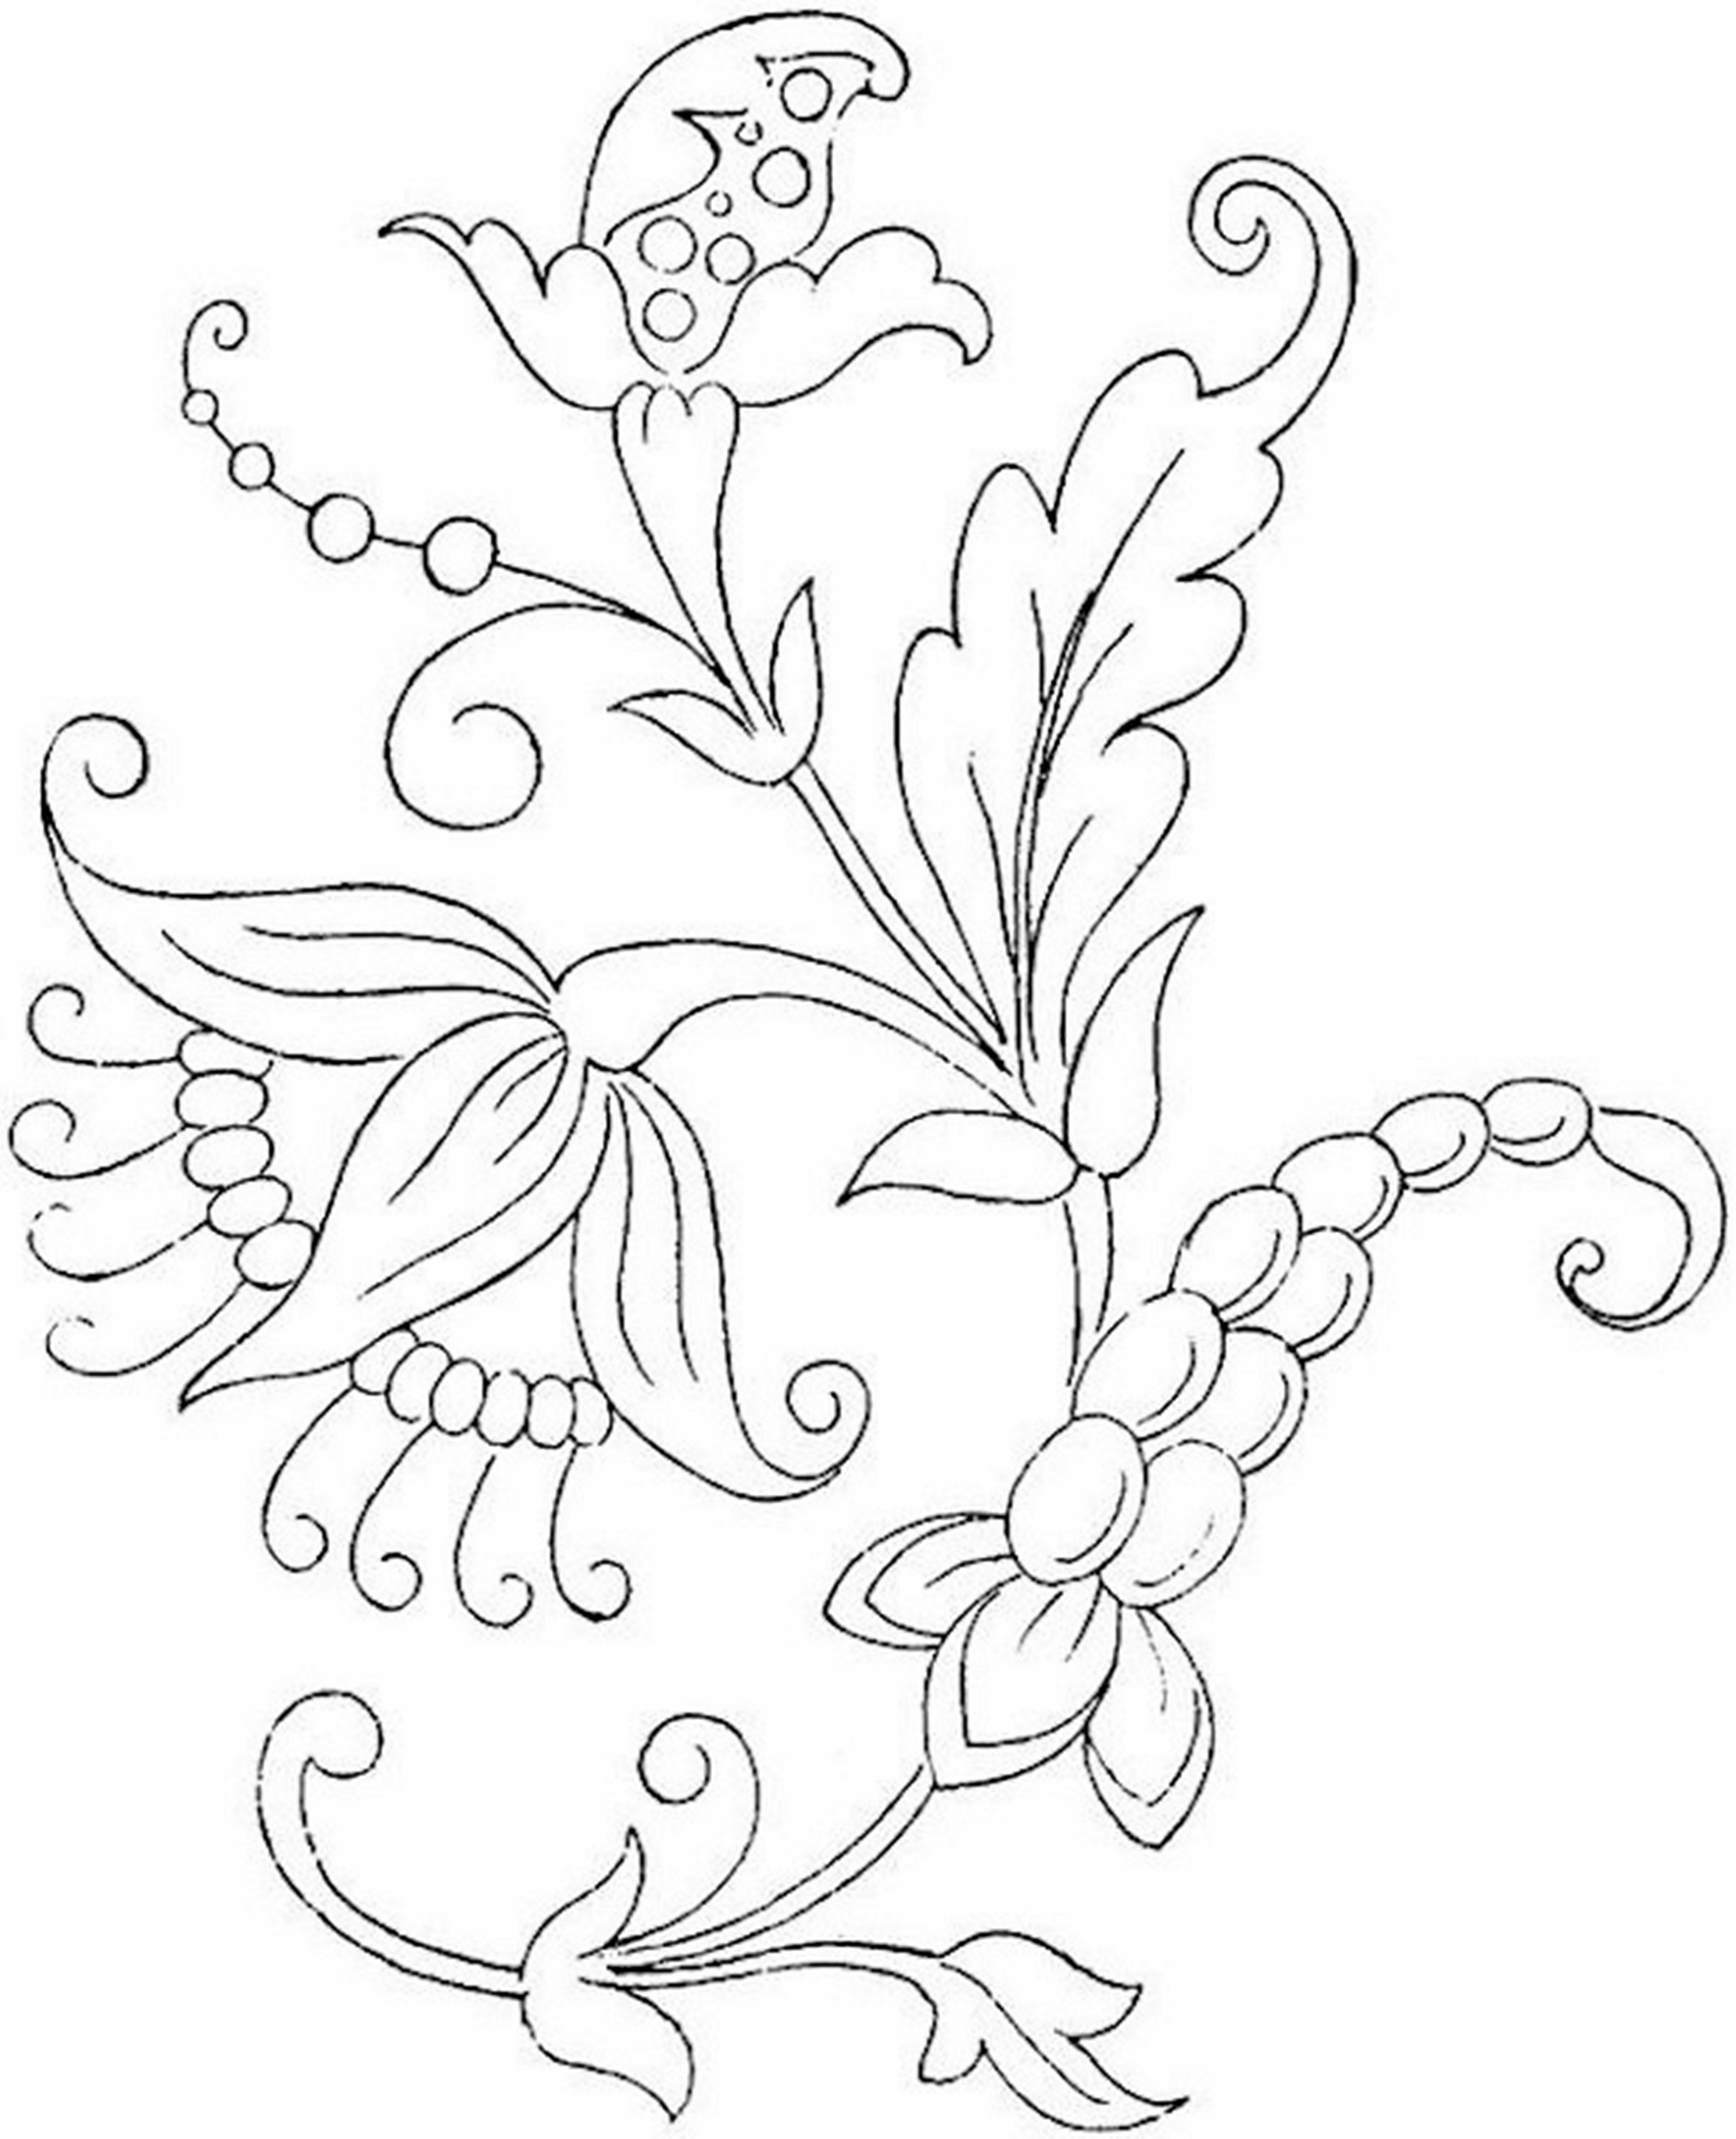 flower coloring pages for kids free printable flower coloring pages for kids best coloring flower kids for pages 1 1